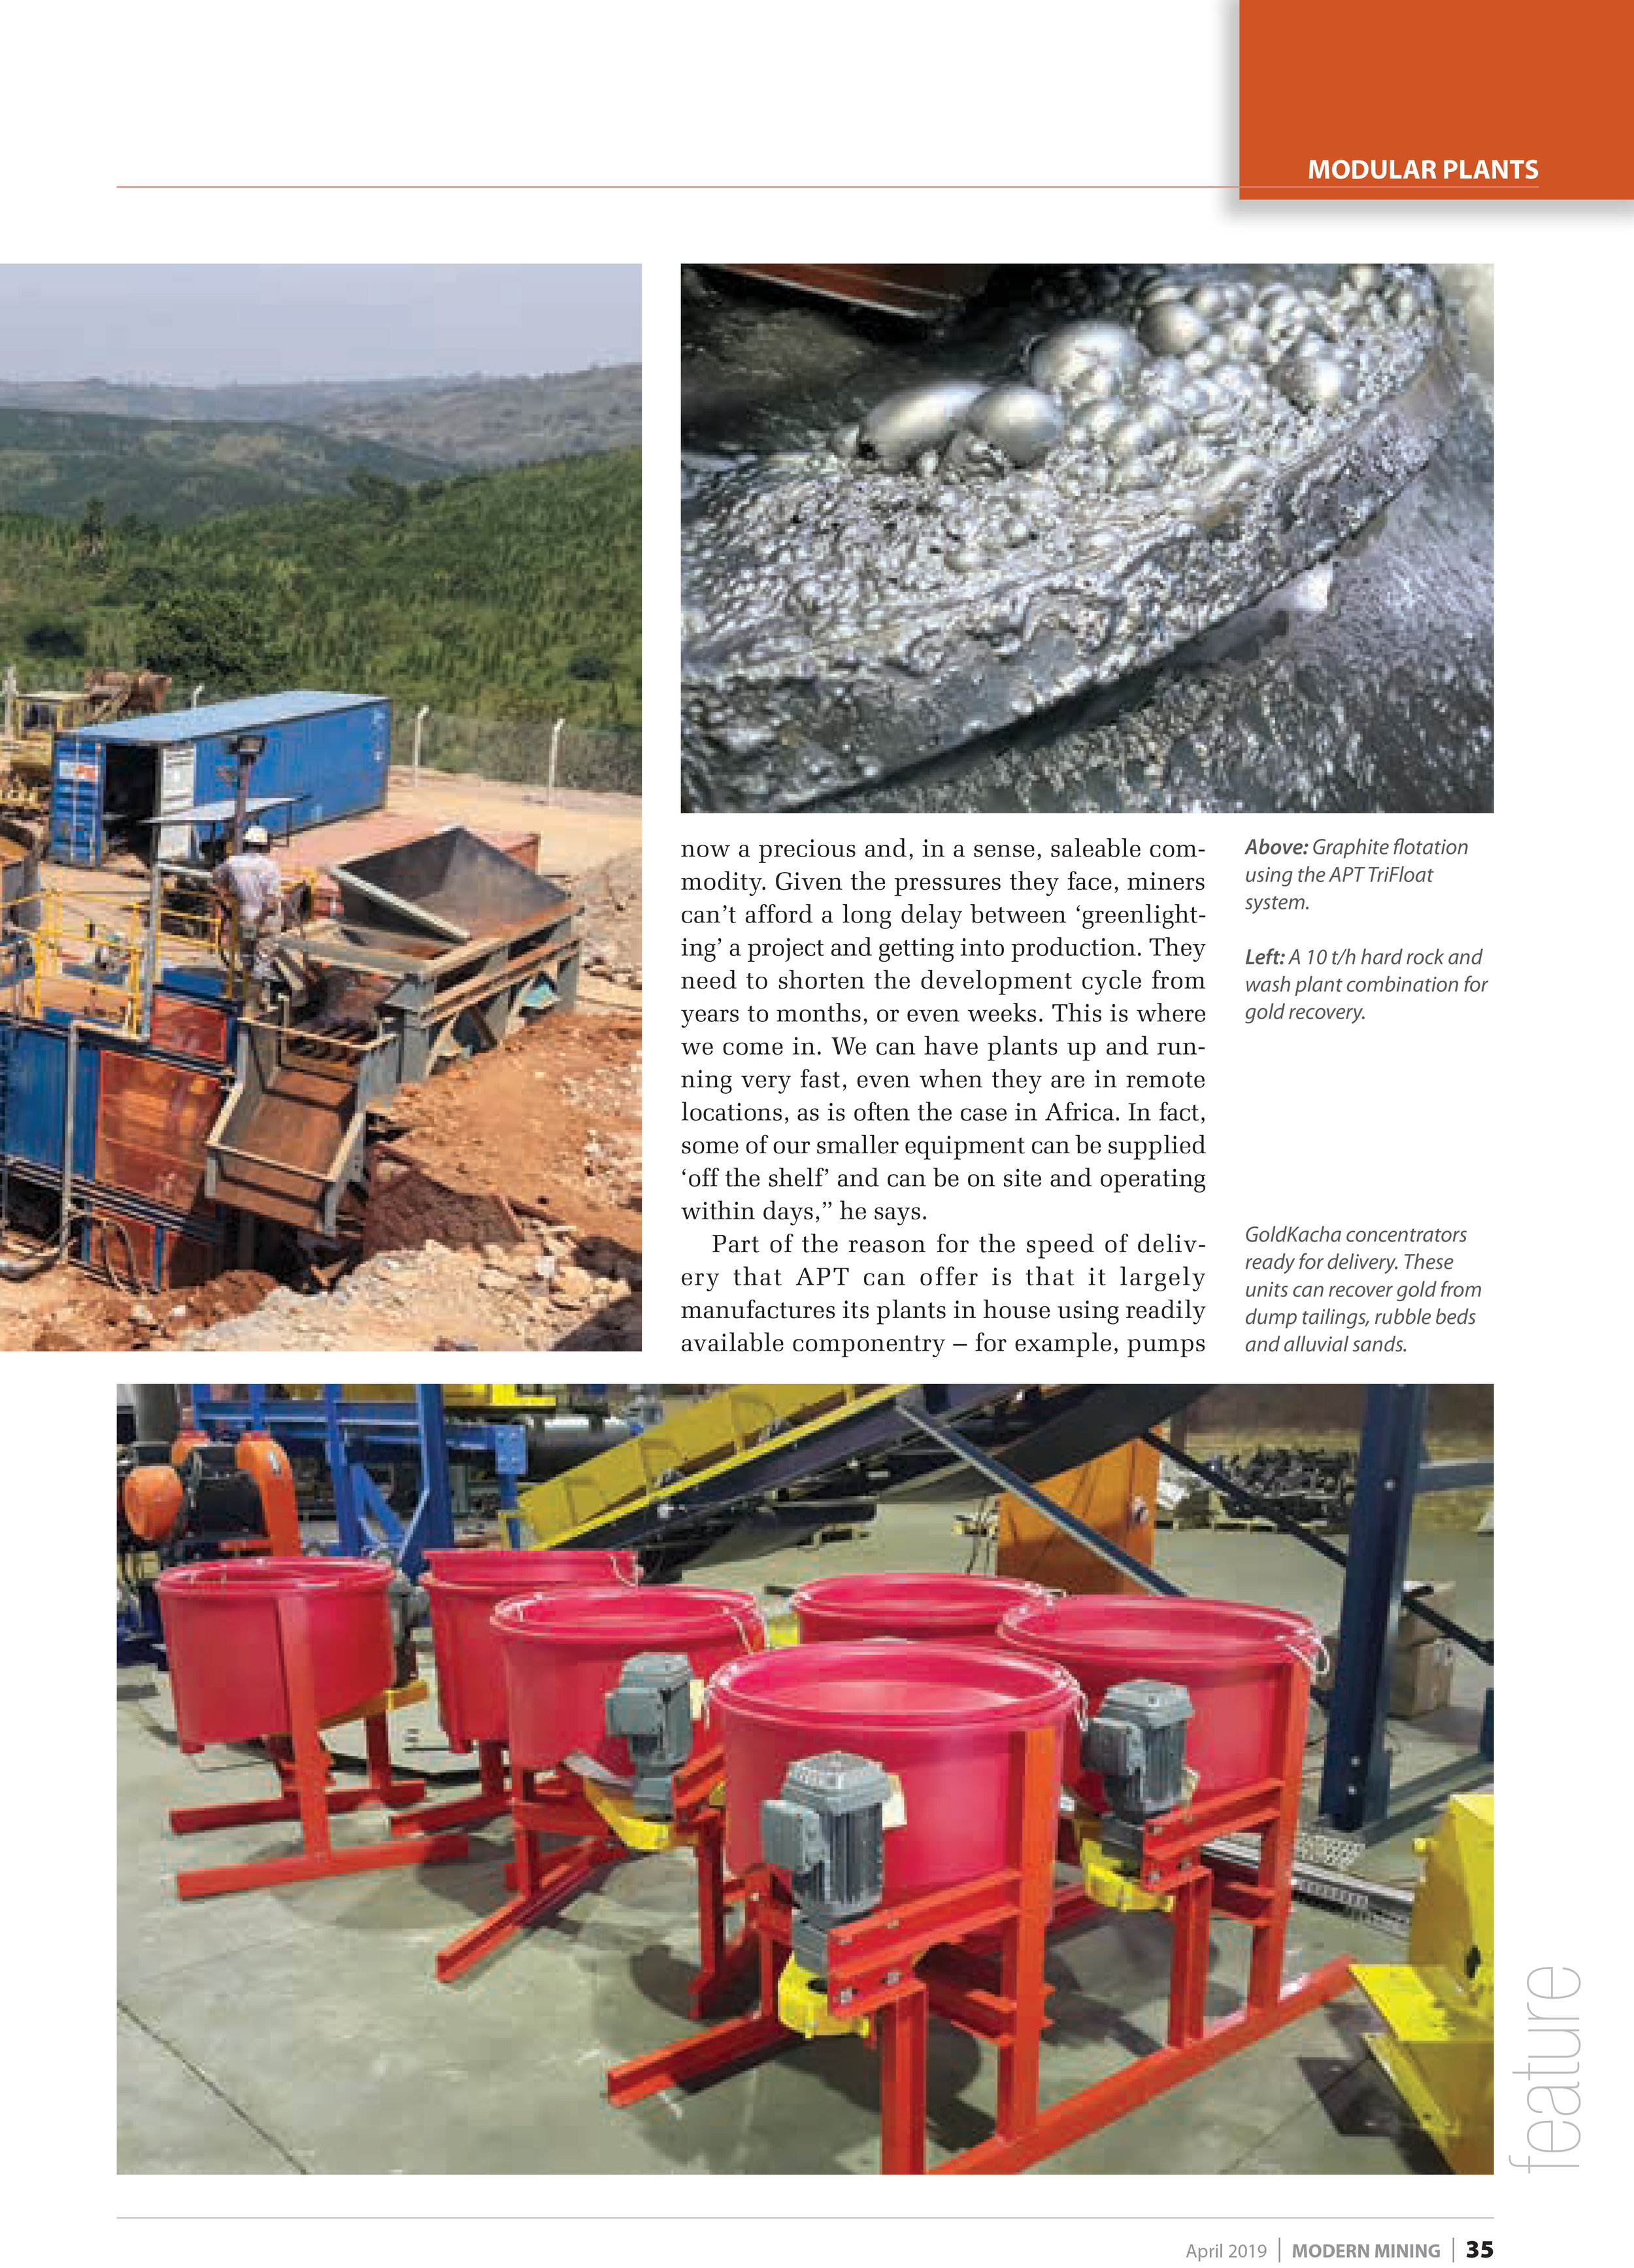 Credit to Modern Mining, April 2019 Issue, Page 37